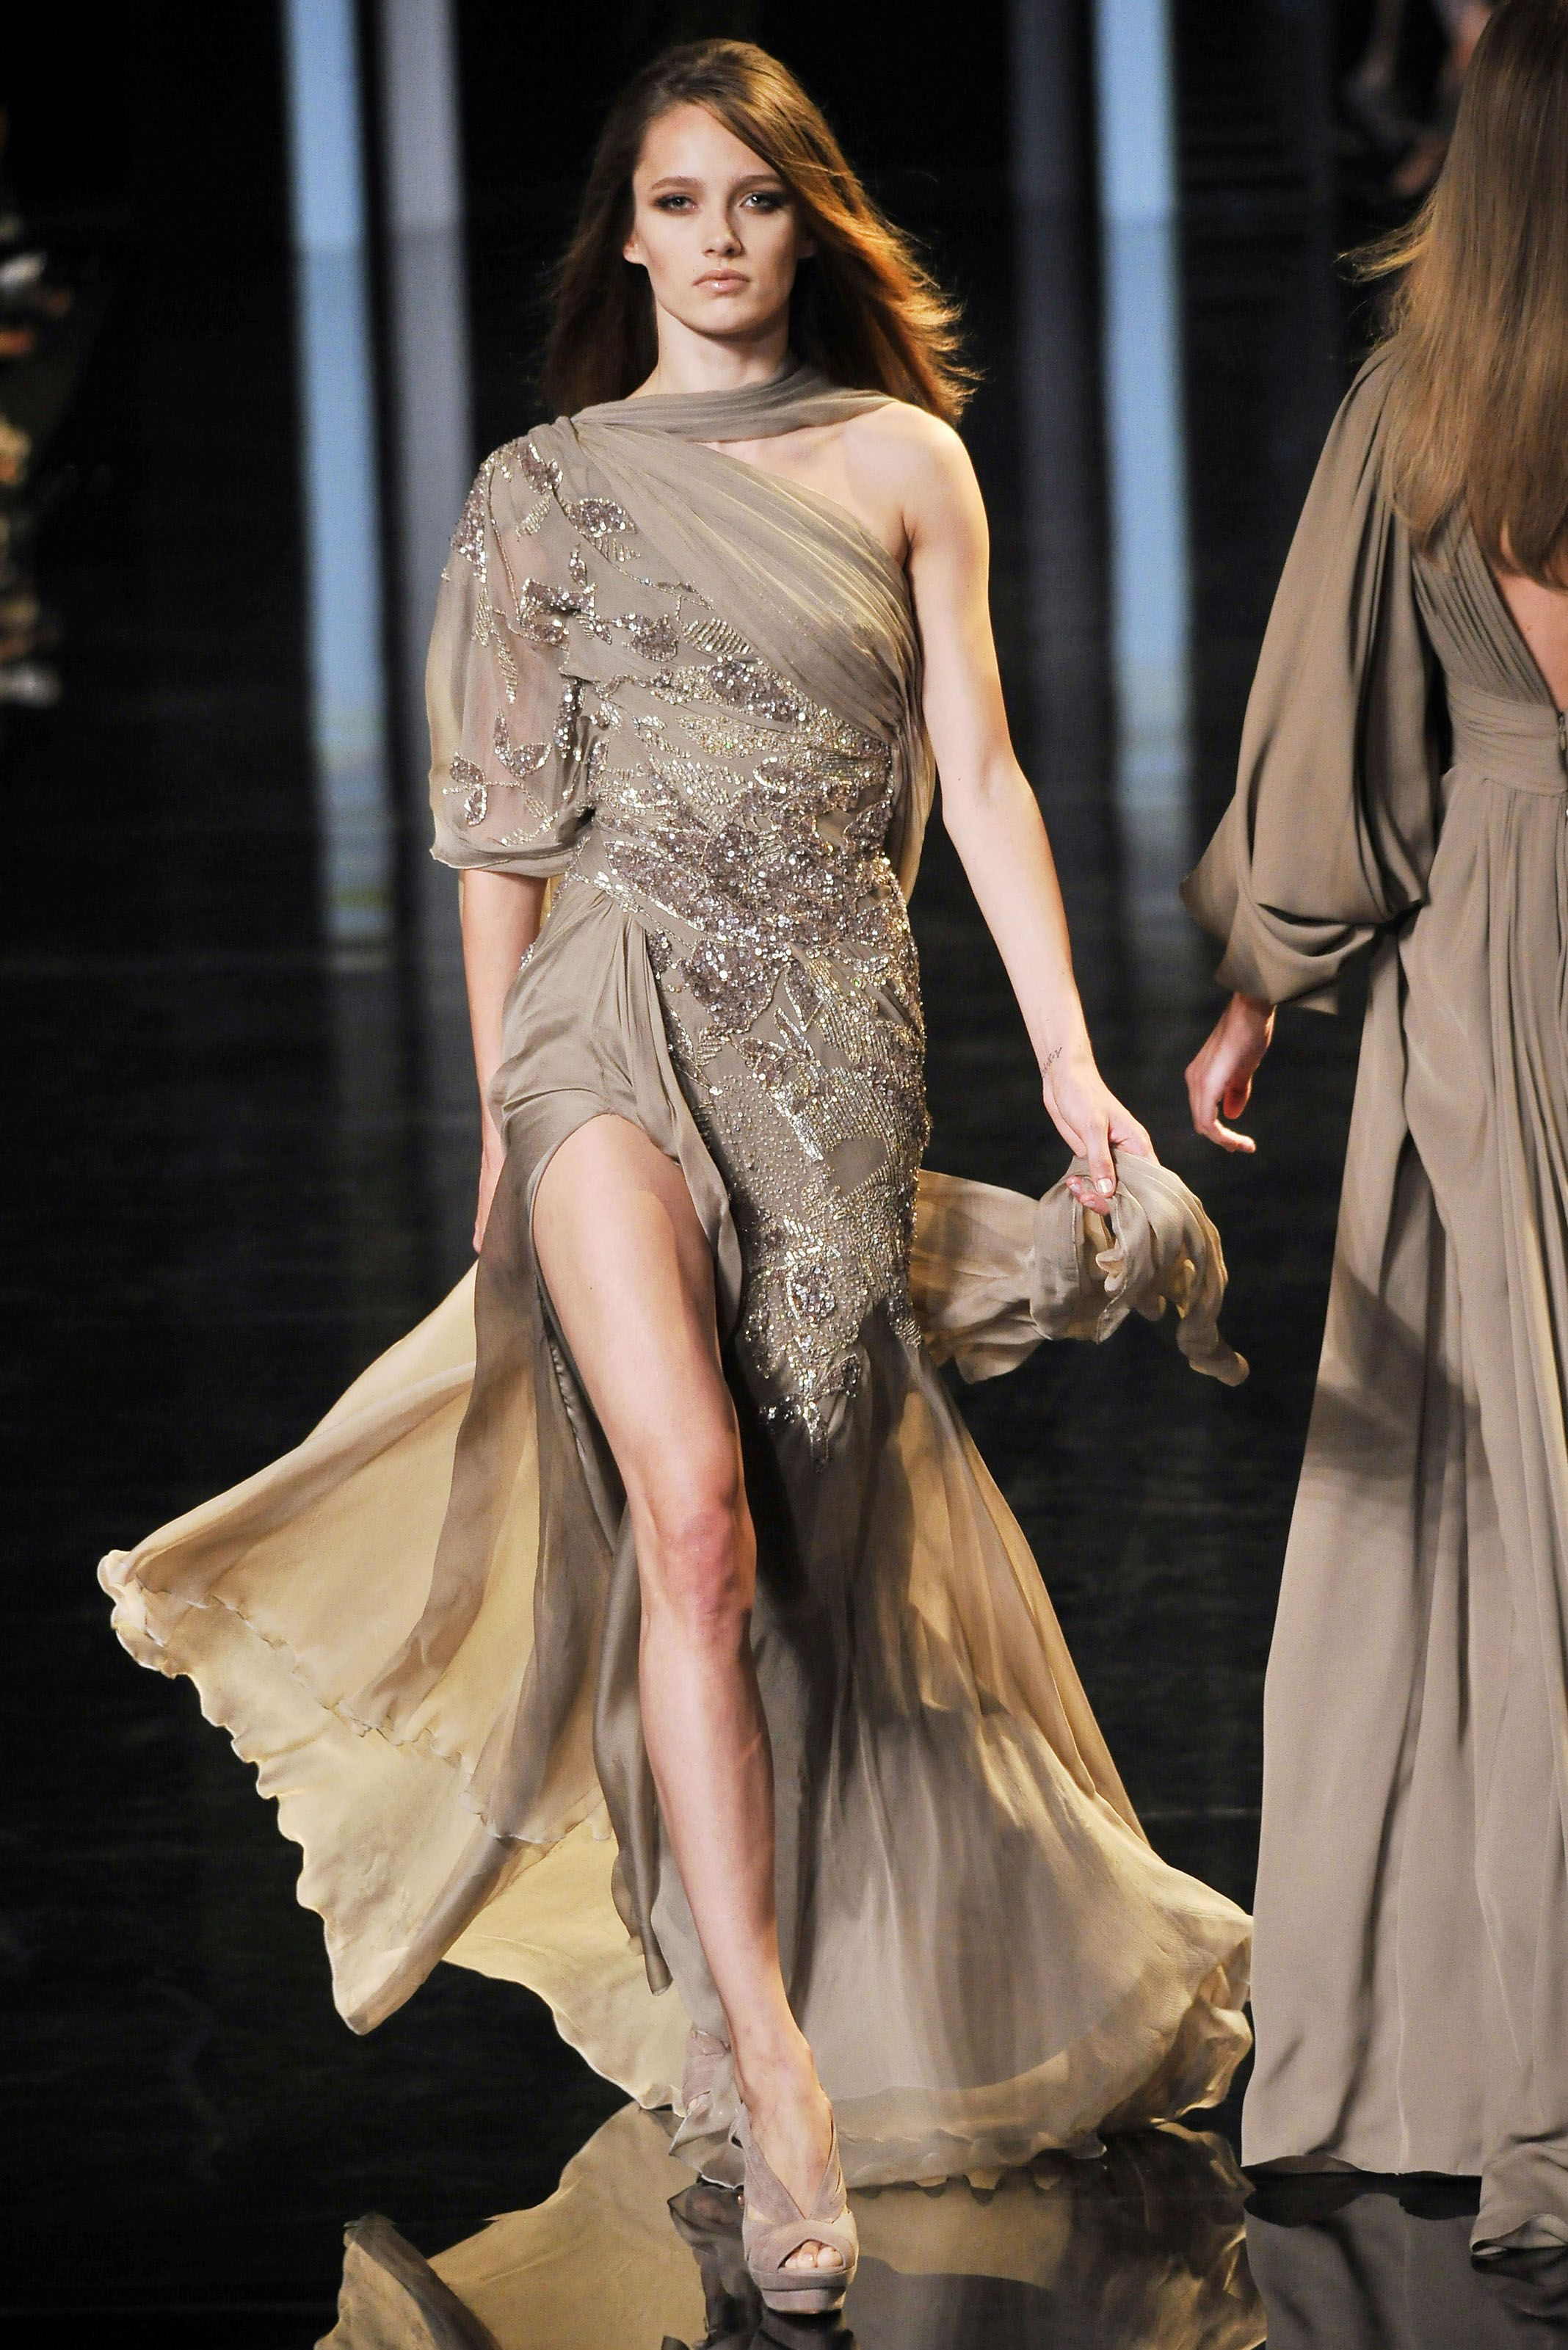 Elie Saab Haute Couture Fall Winter 2010/2011